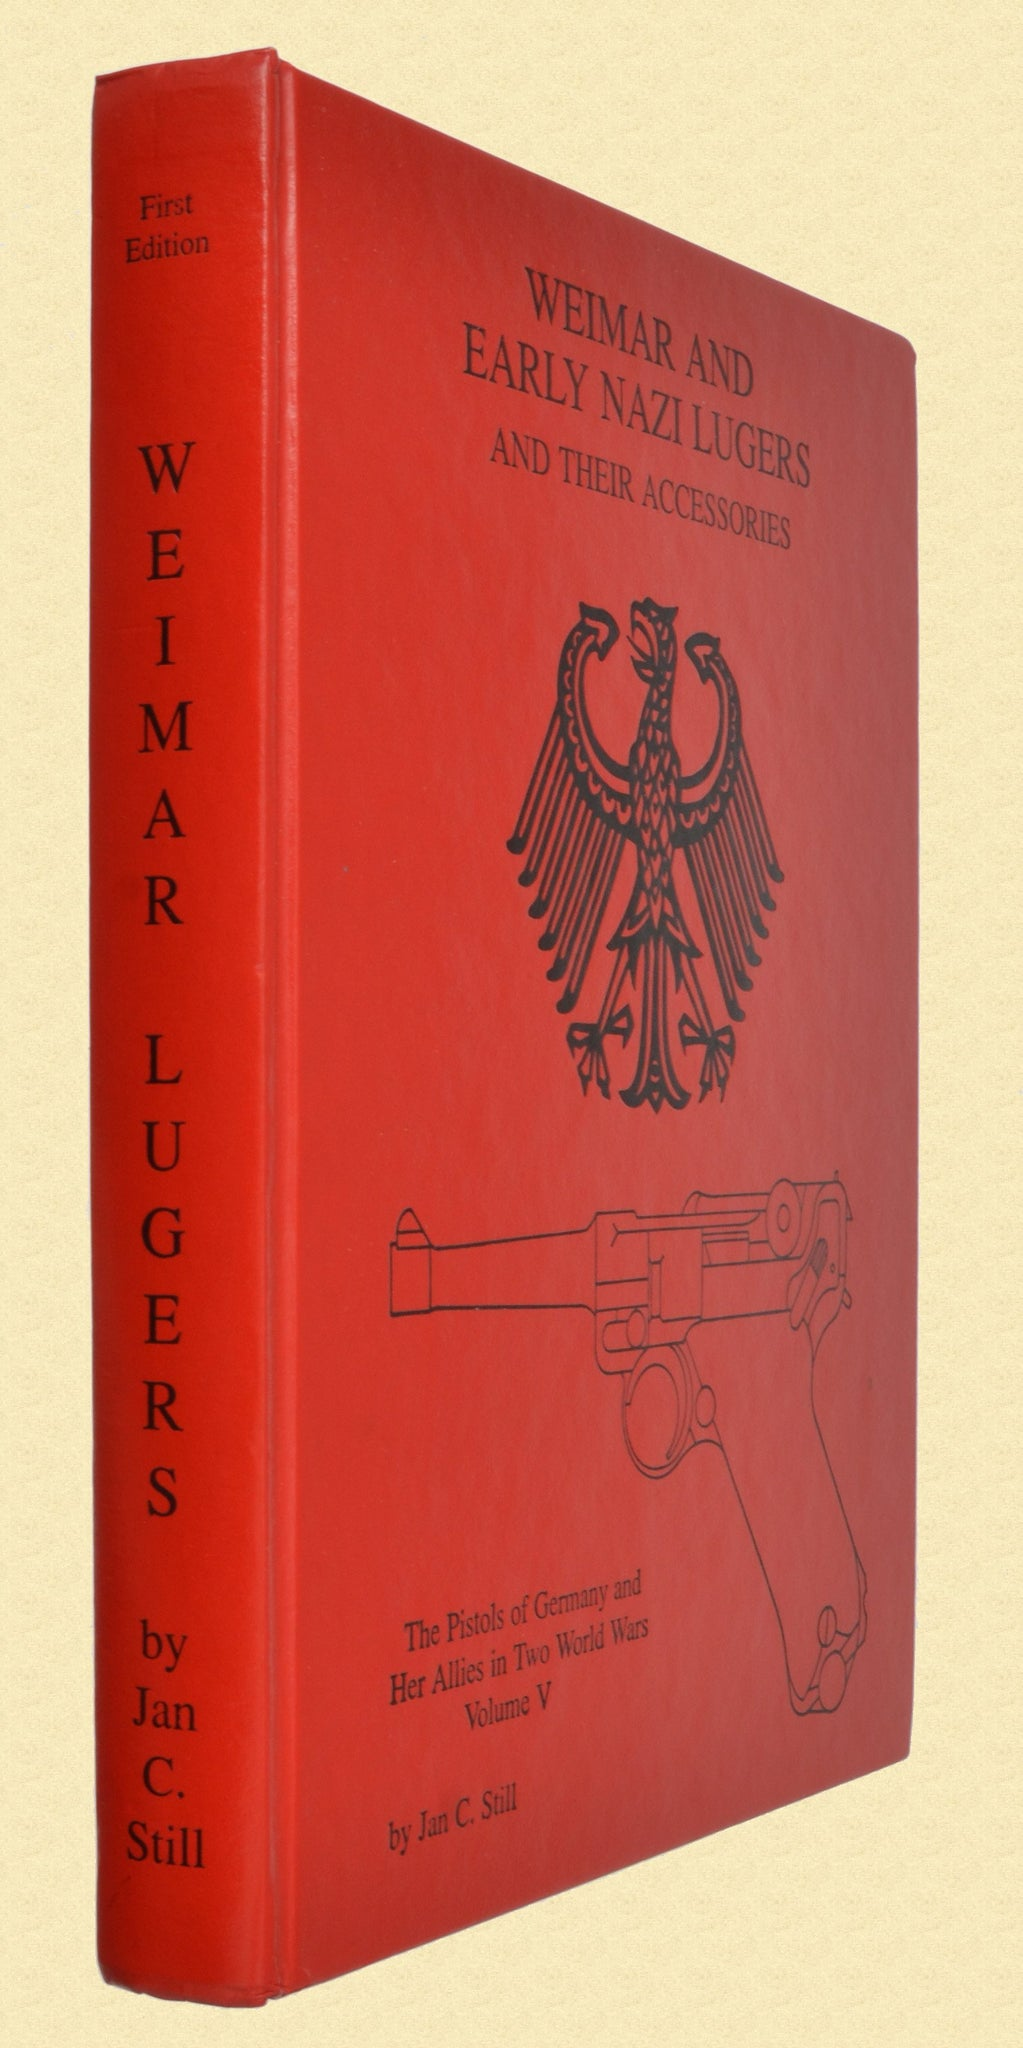 BOOK WEIMAR AND EARLY NAZI LUGERS